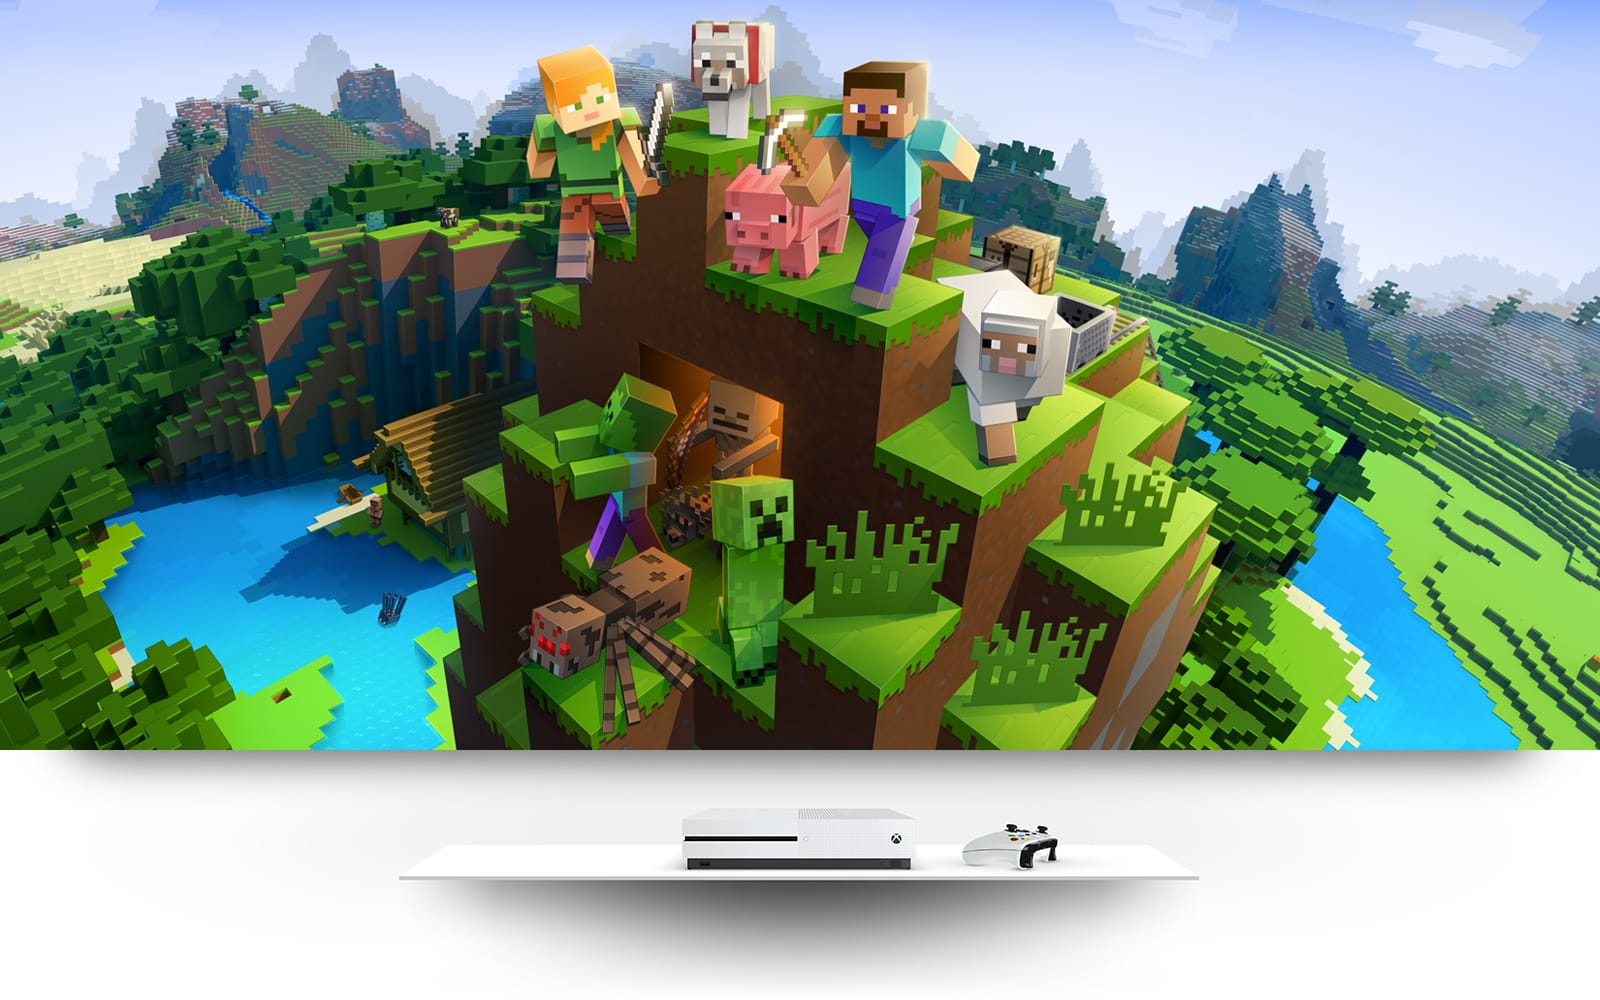 Minecraft World con habitantes